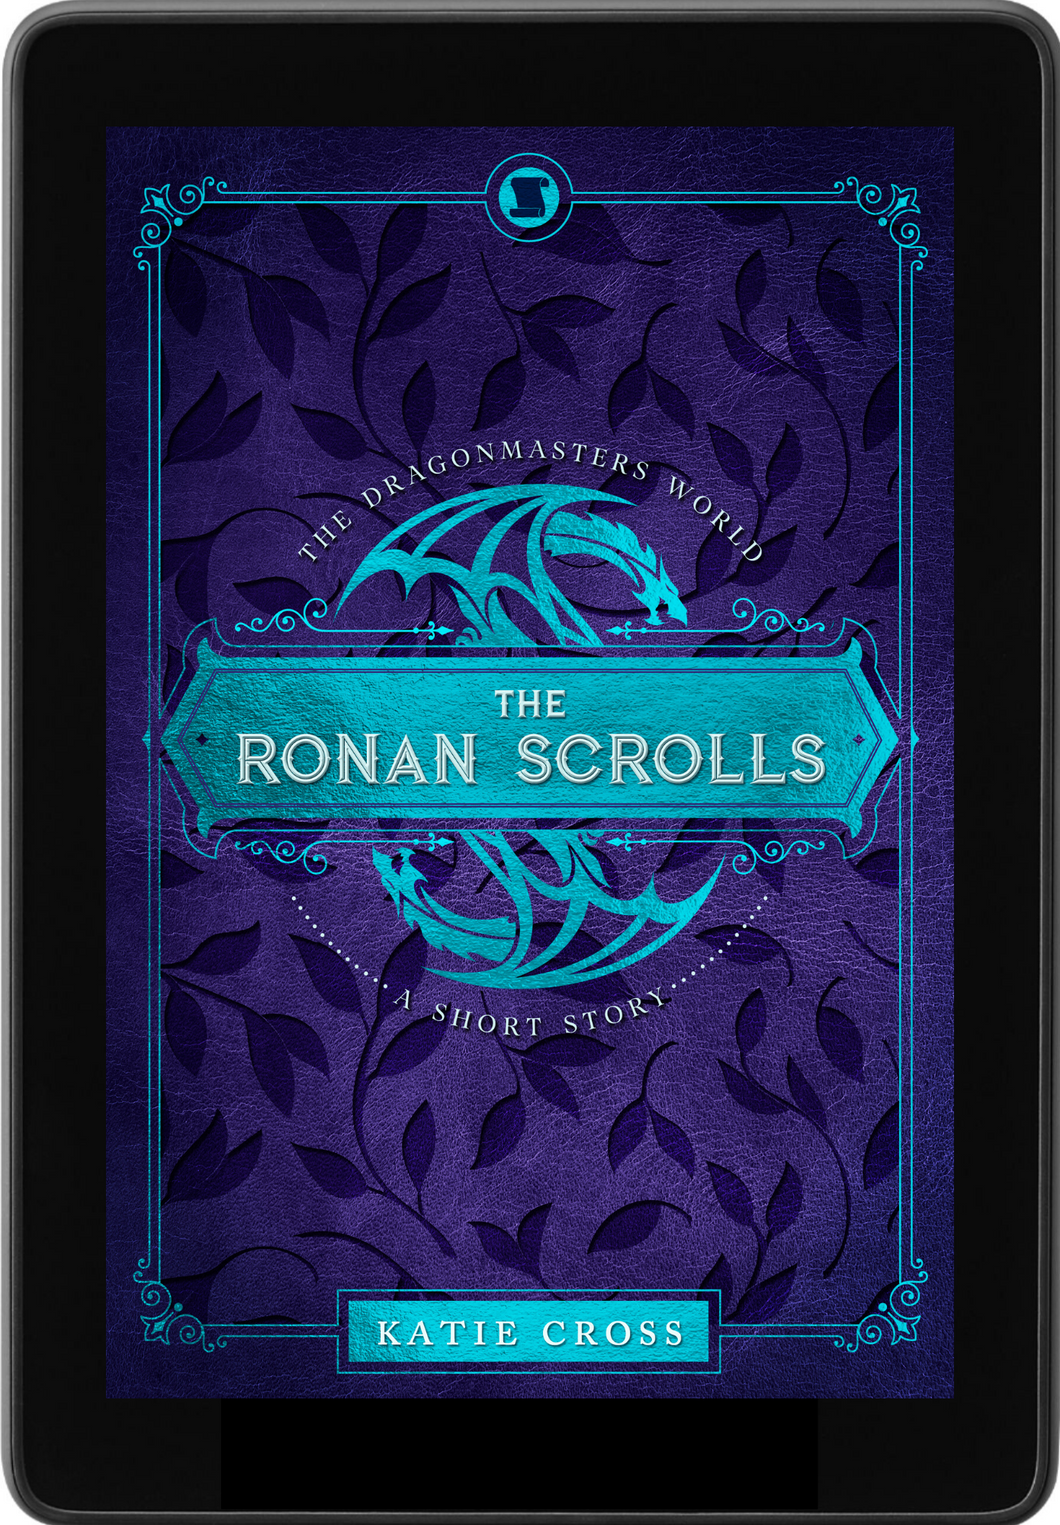 The Ronan Scrolls (Companion Novella to The Dragonmaster Trilogy) - Katie Cross